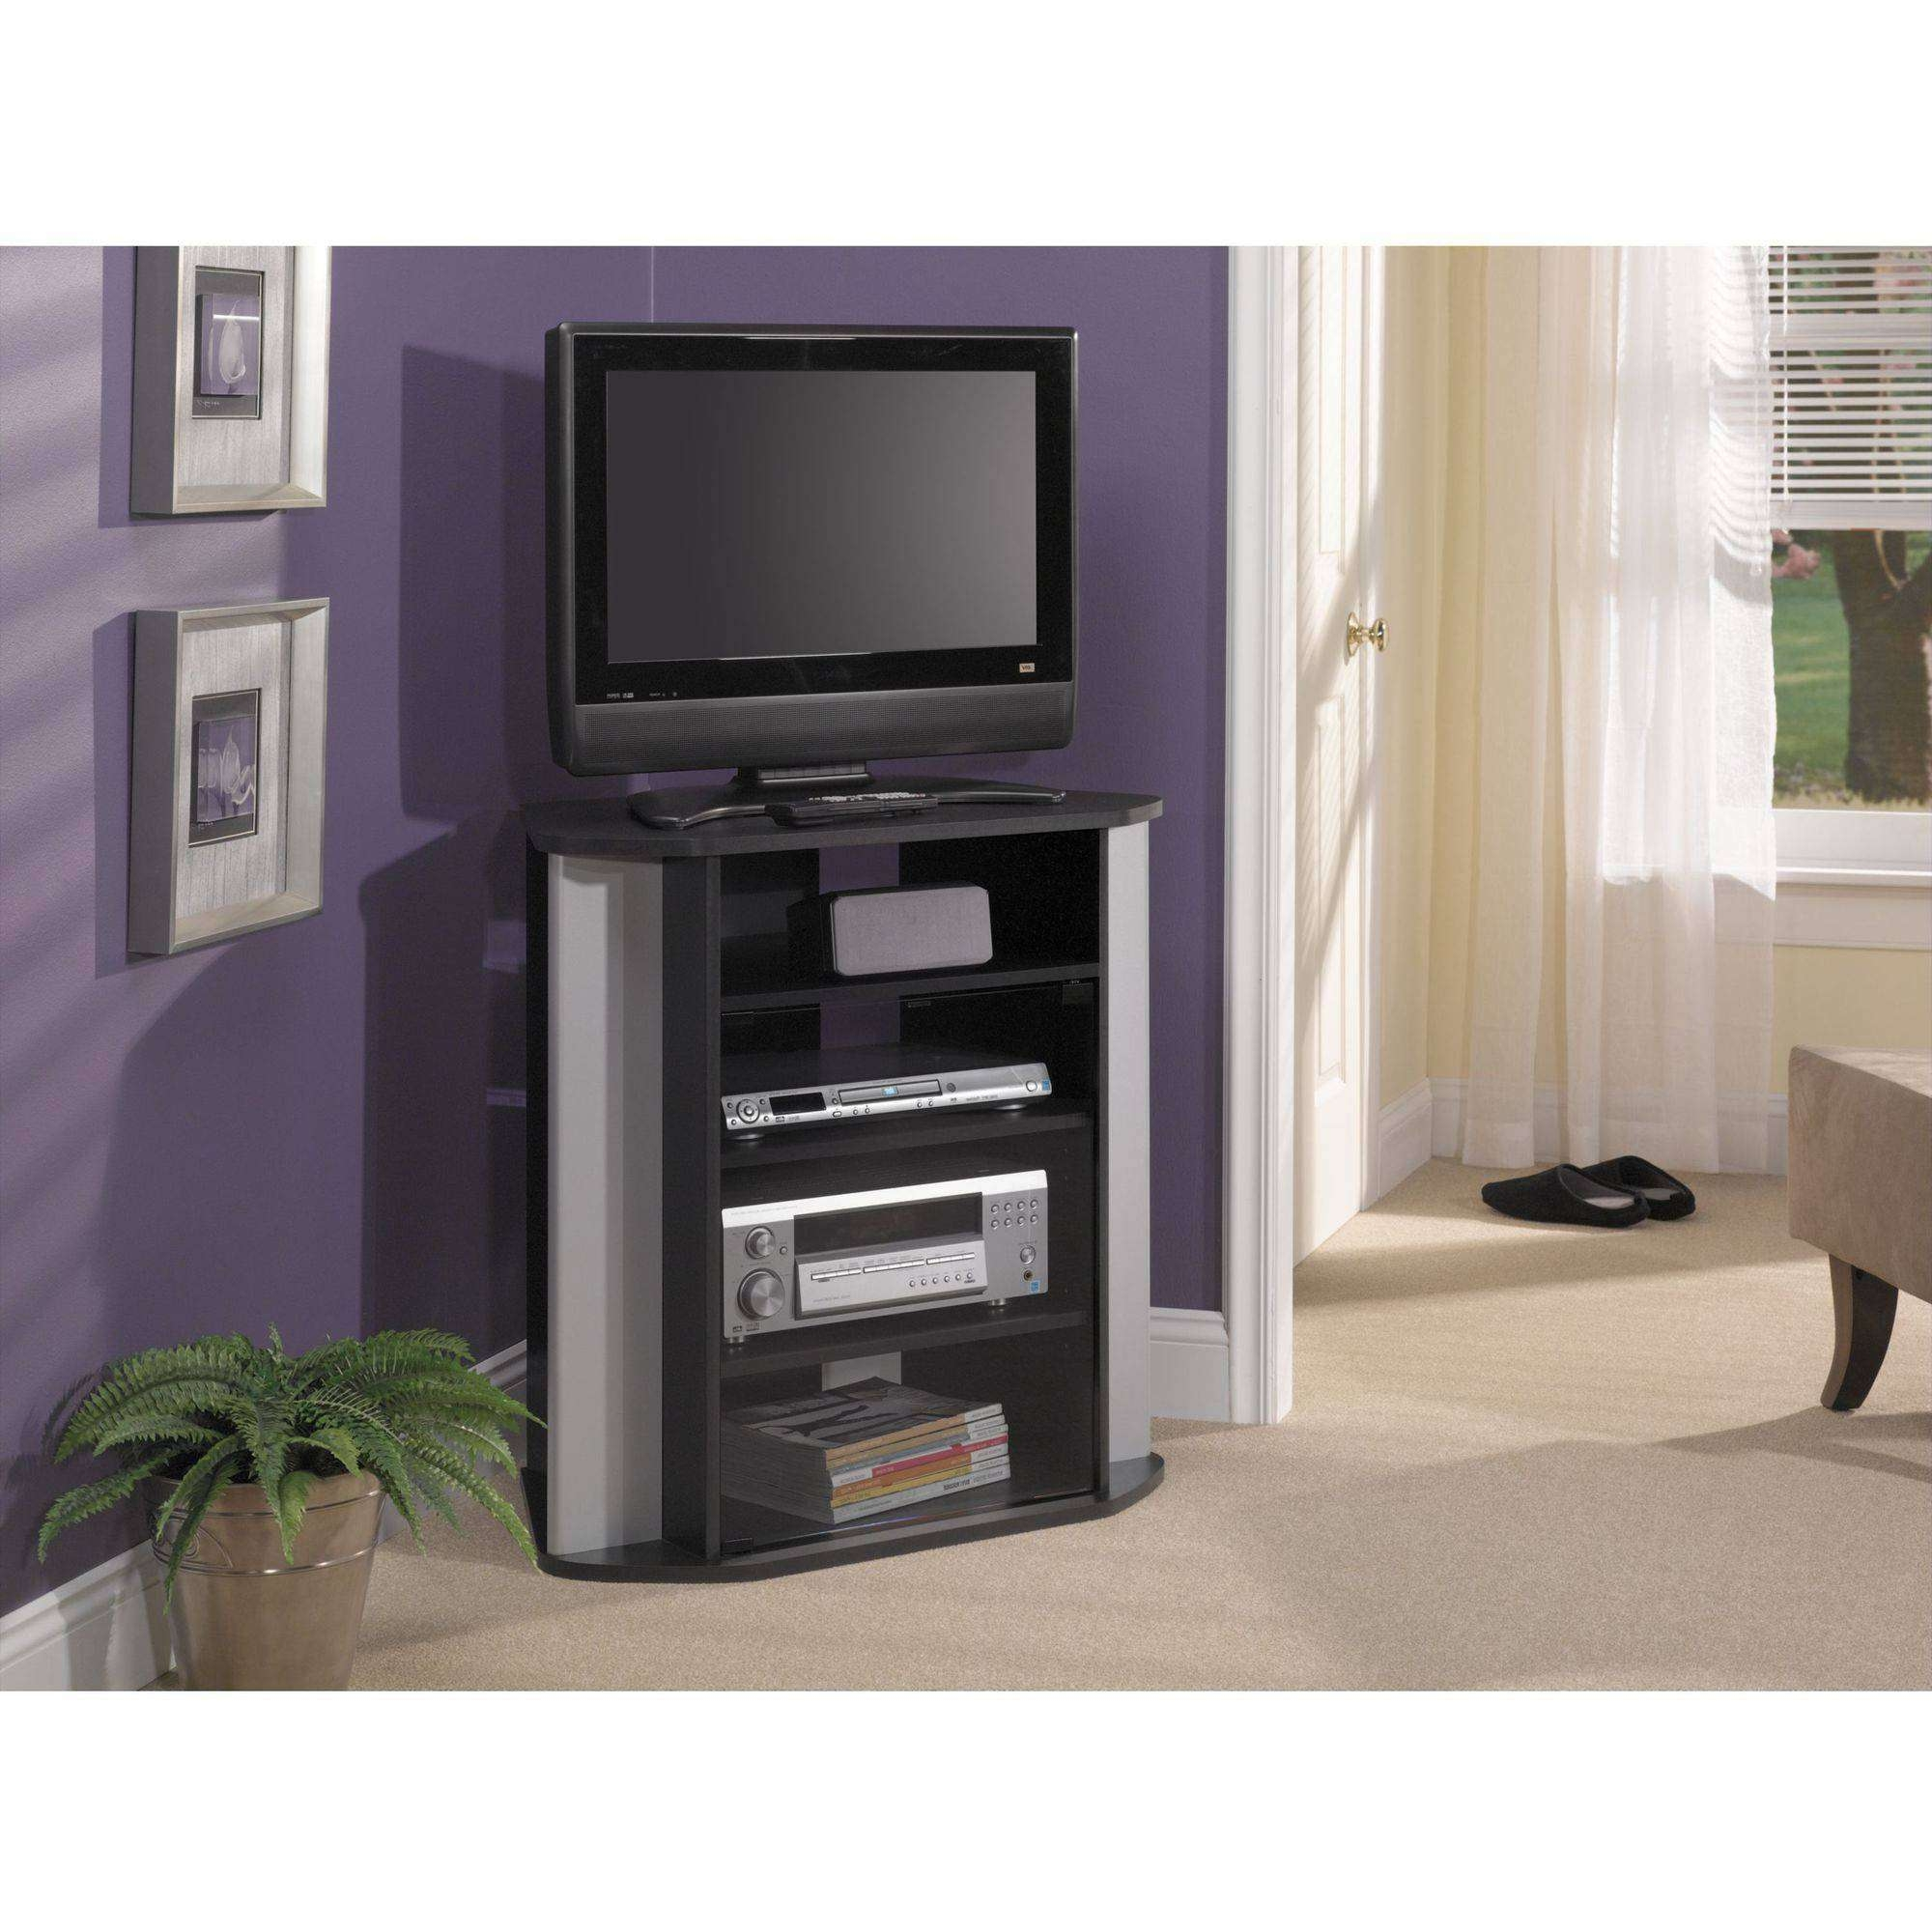 Bush Visions Black Tall Corner Tv Stand, For Tvs Up To 37 Inside White Tall Tv Stands (View 3 of 15)